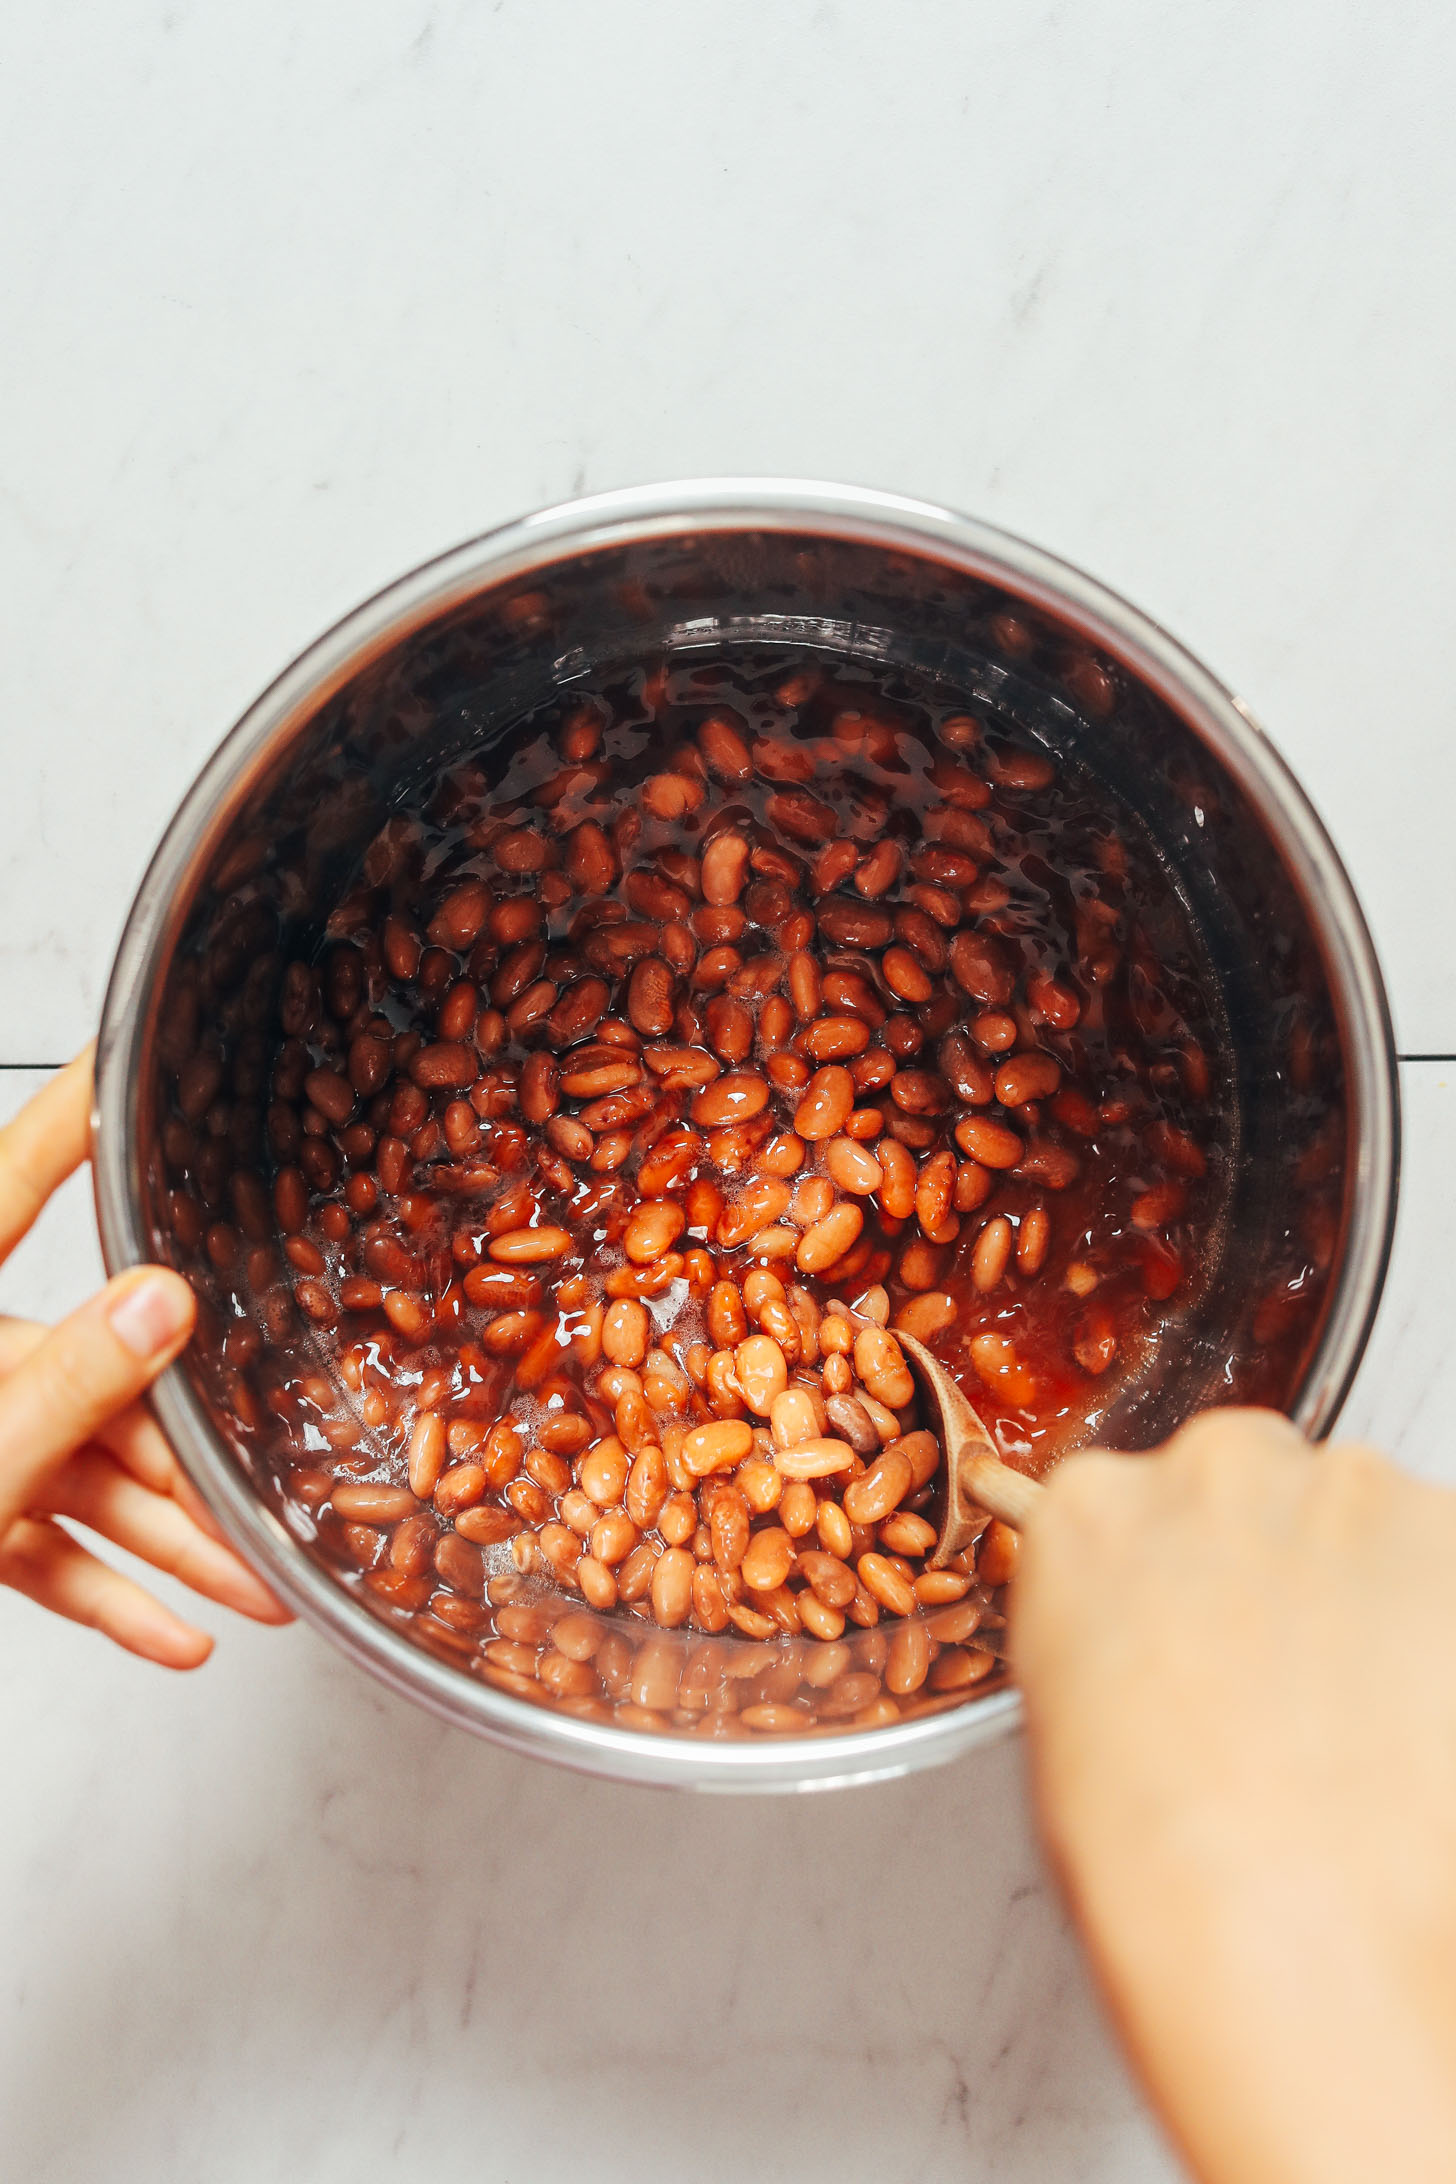 Stirring a pot of pinto beans